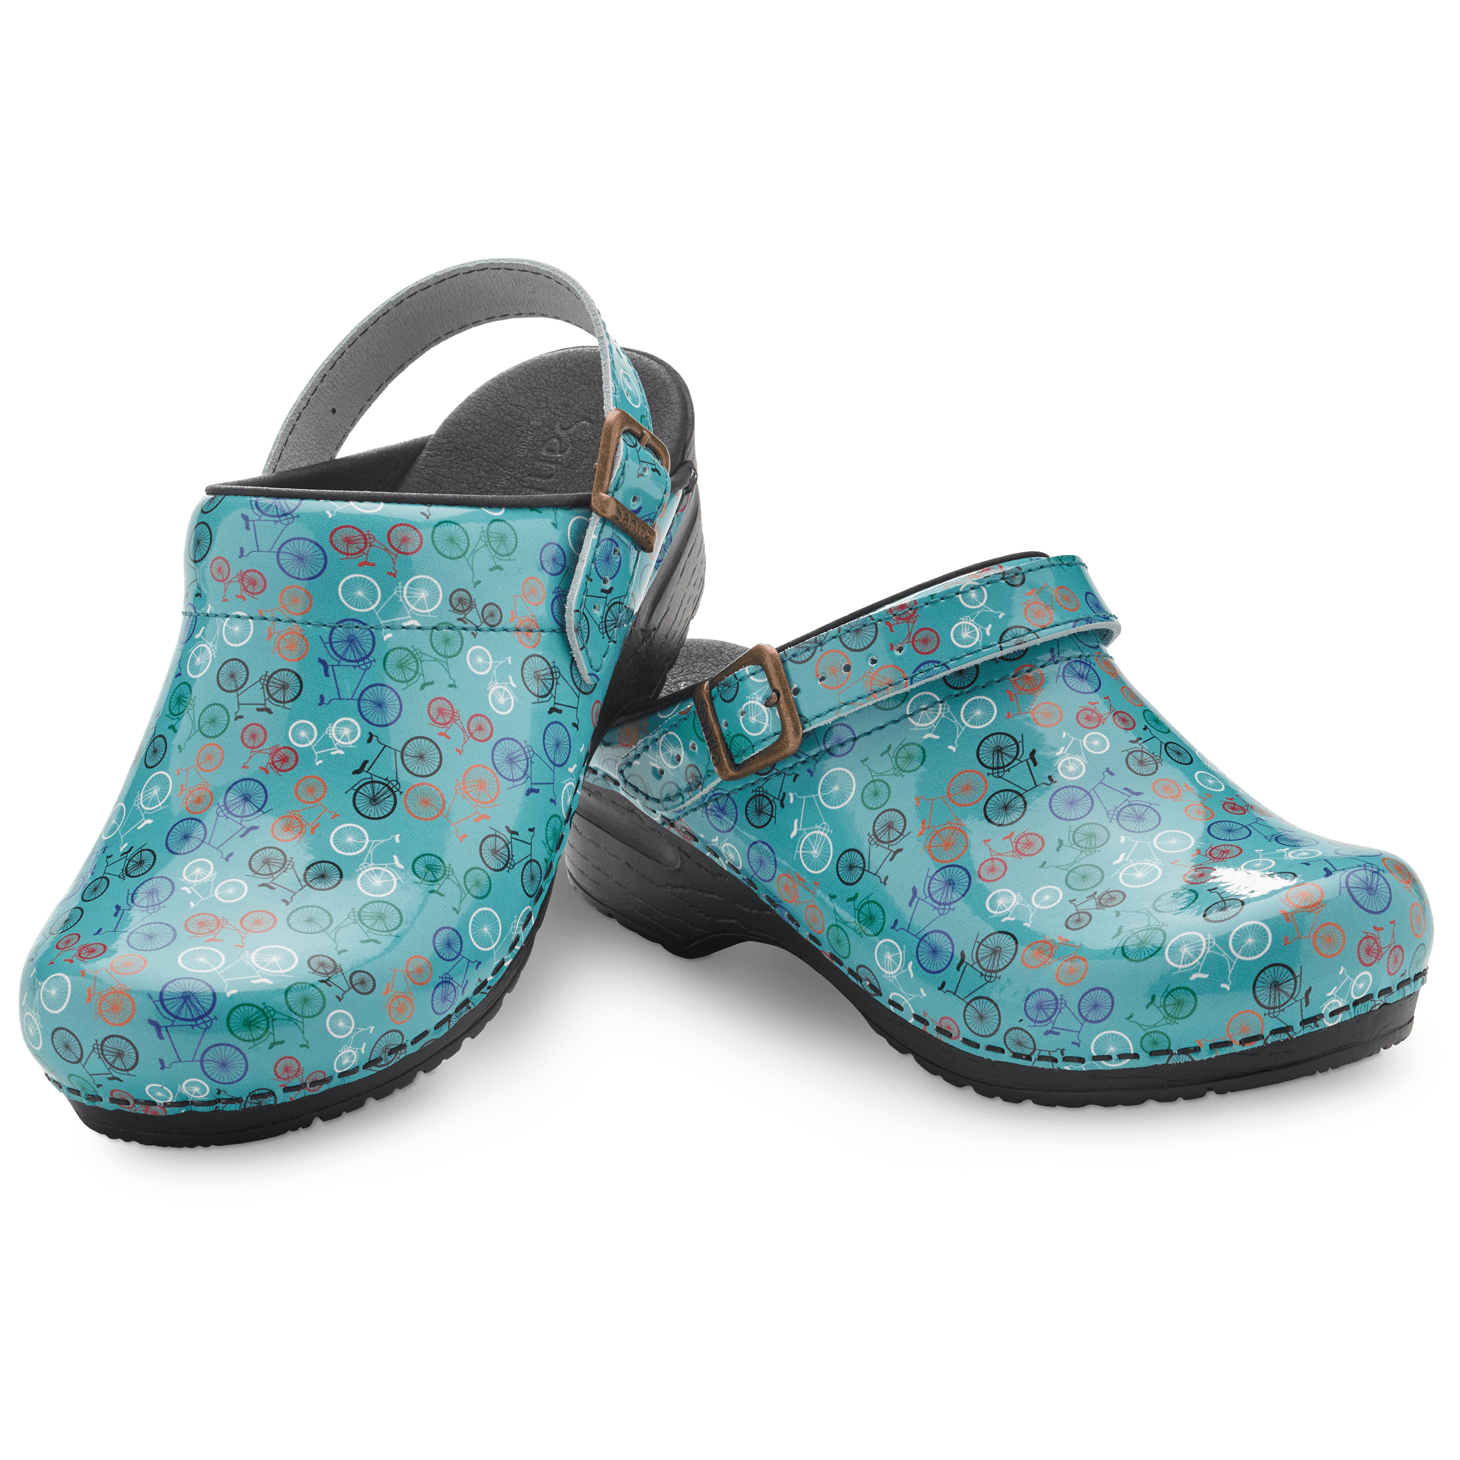 Sanita Estelle Women's Open Back Clog in Teal